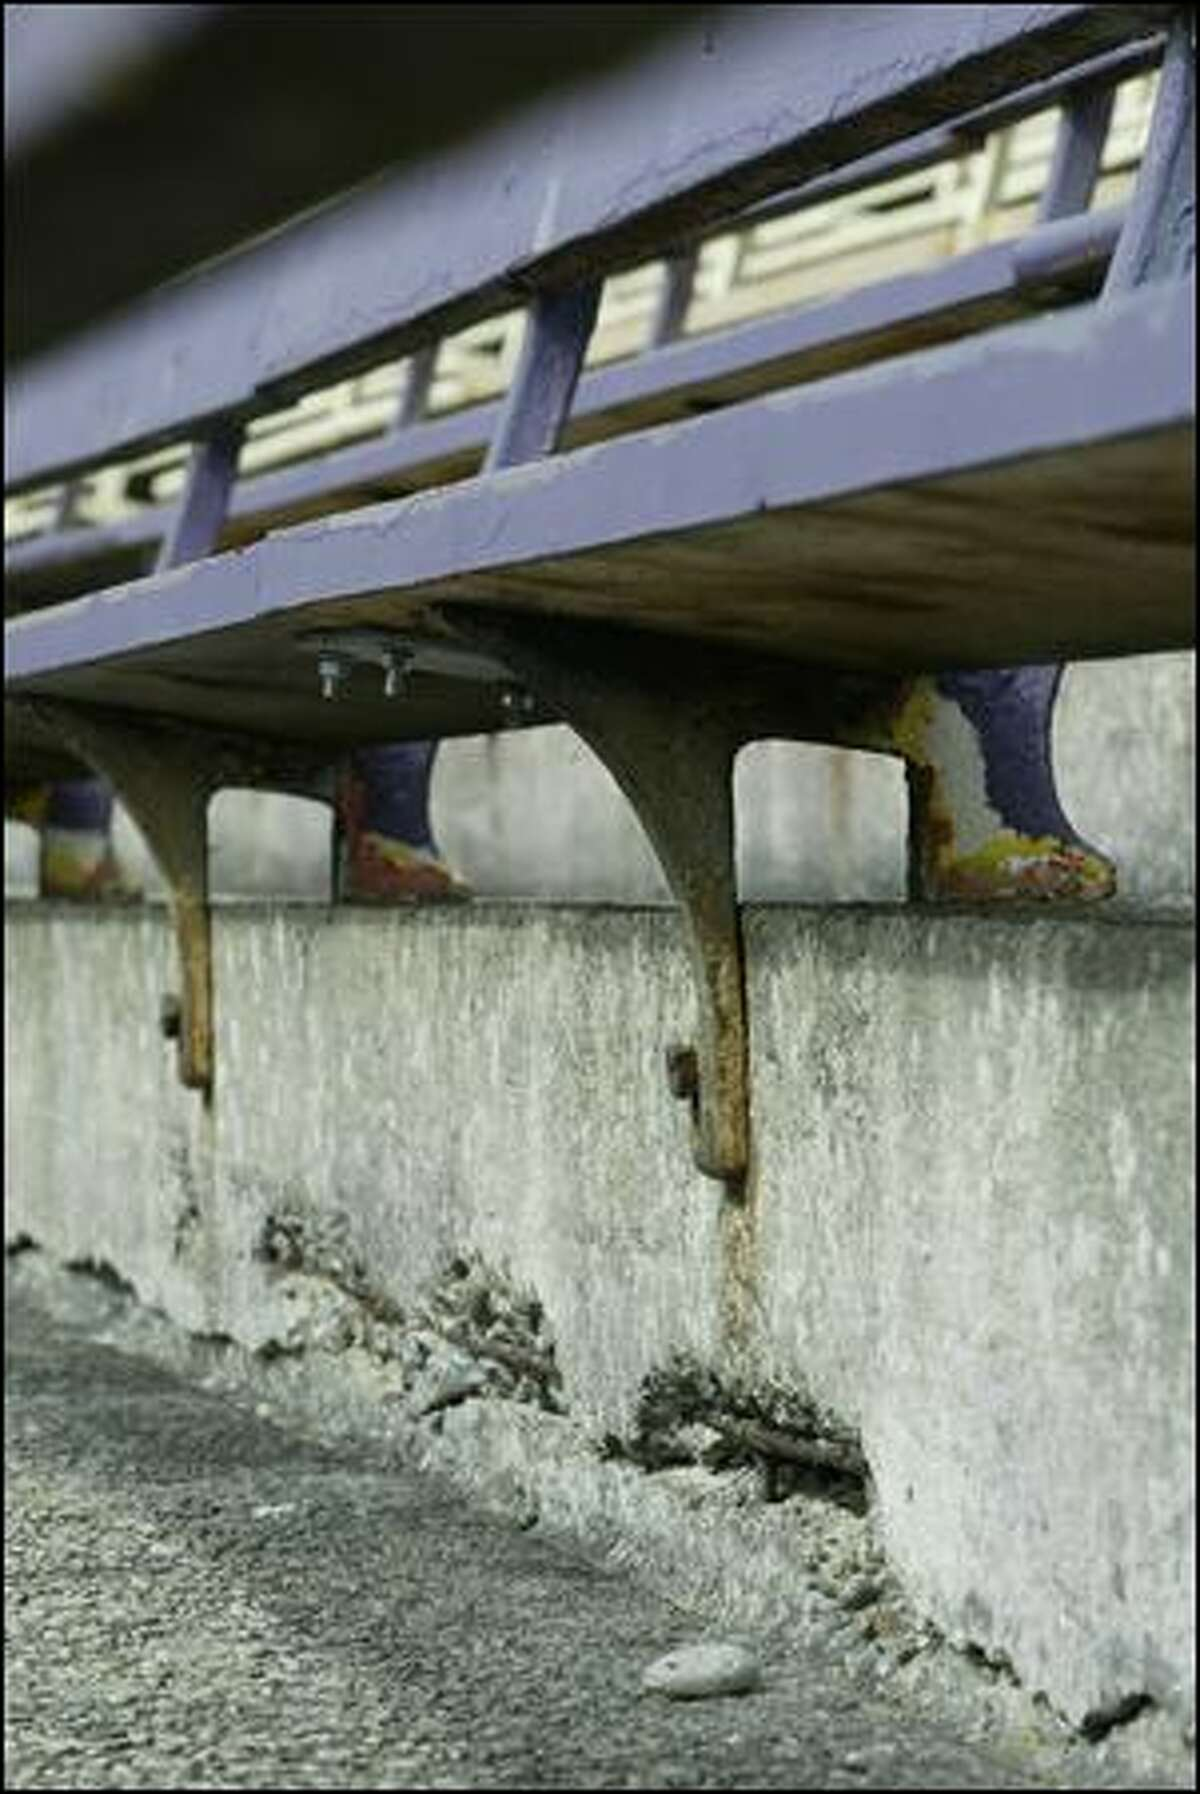 Lateral cracks in the concrete that makes up the lower bowl of Husky Stadium can be seen beneath the bleachers. (P-i File / 2007)